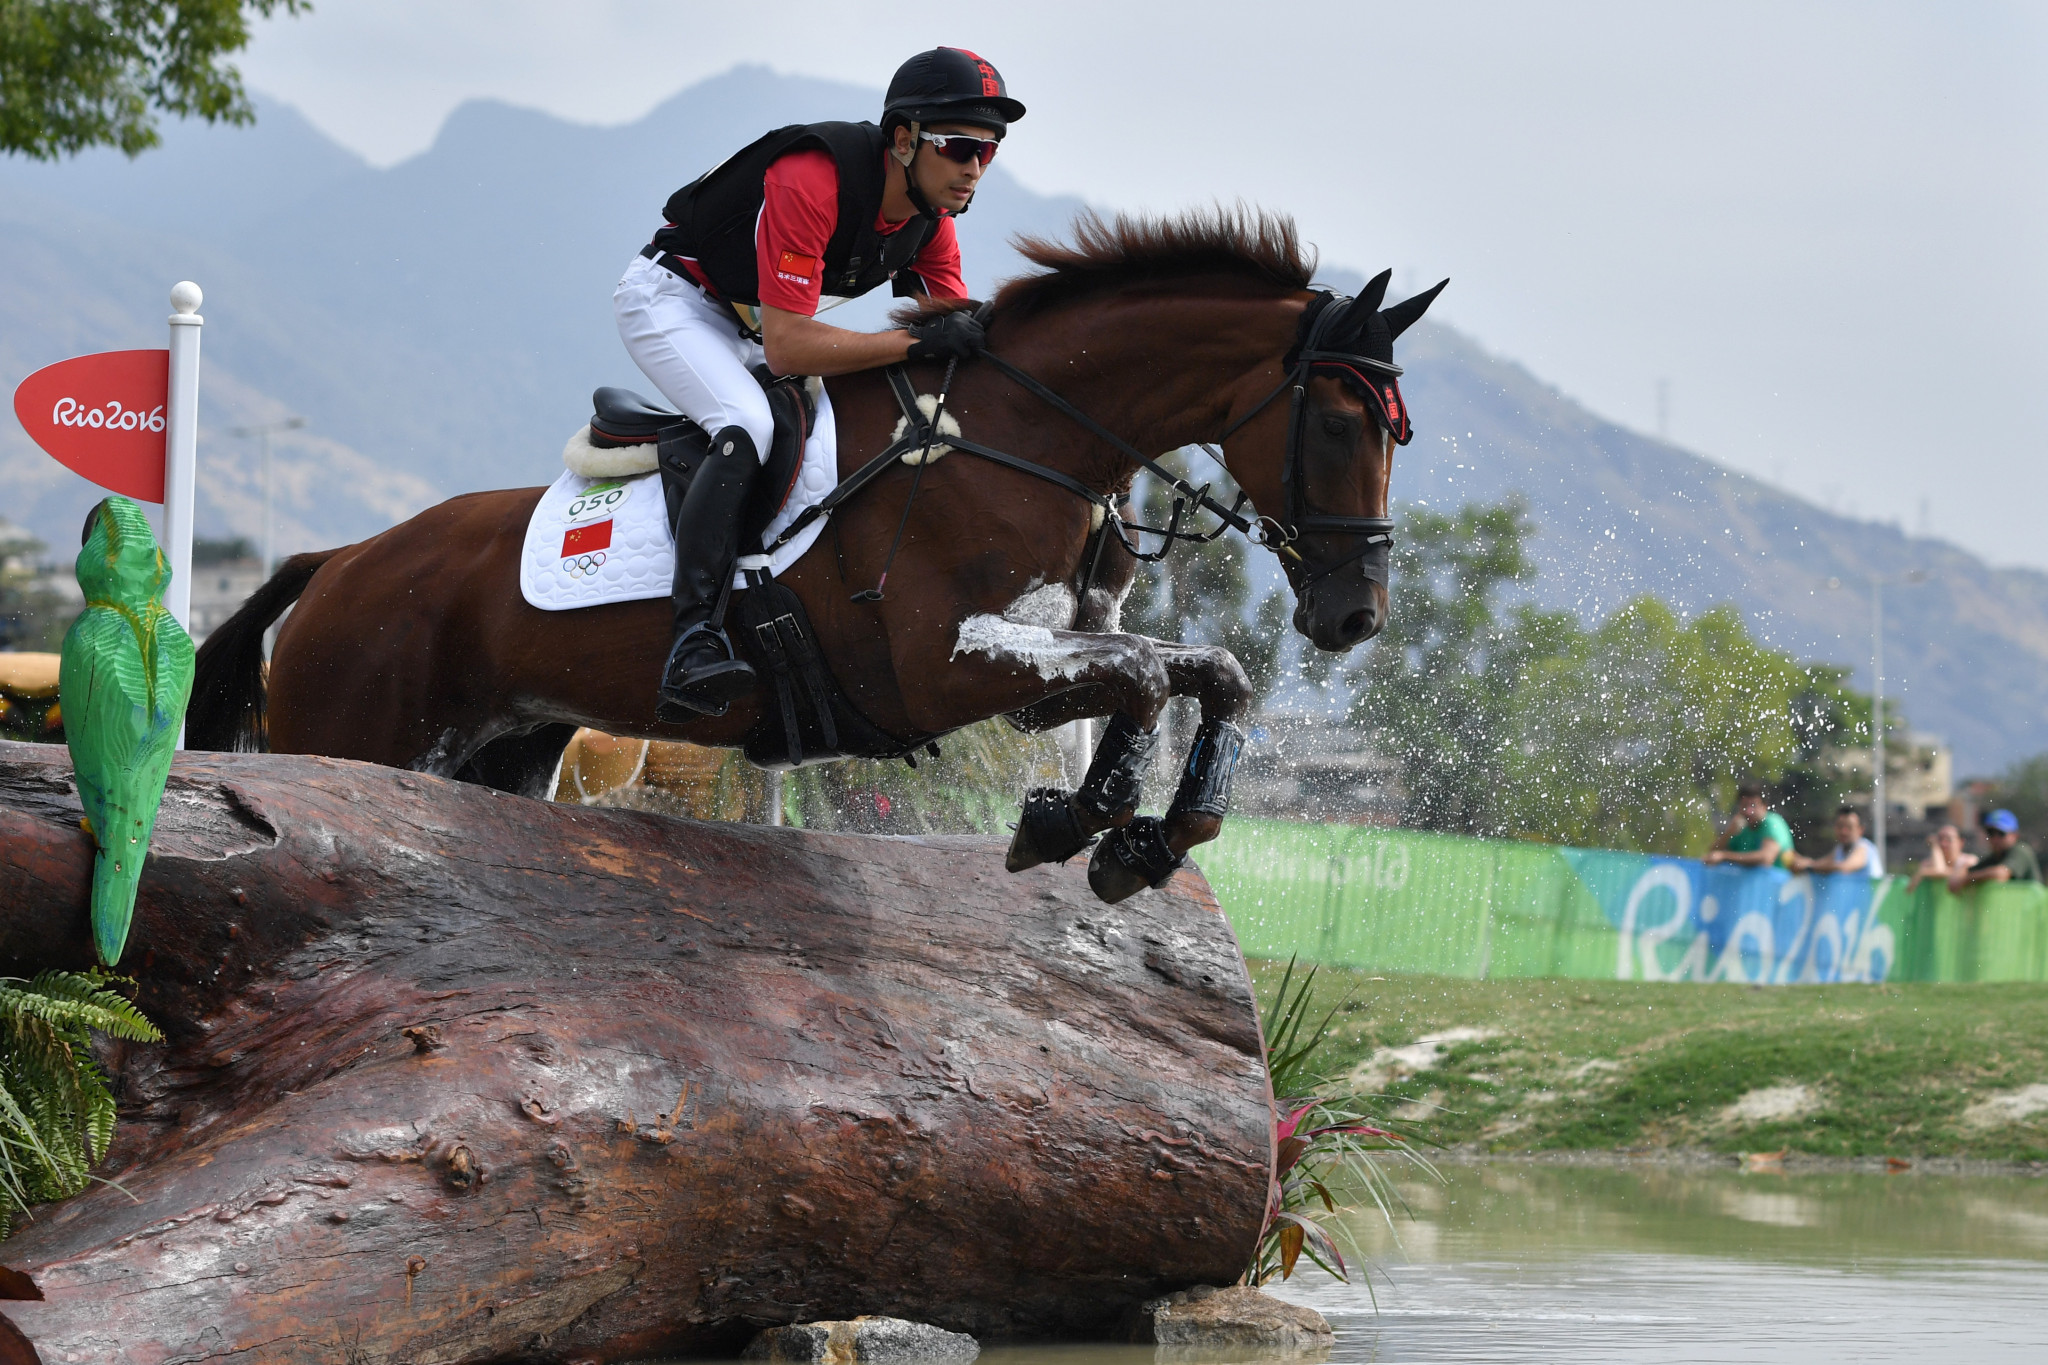 Alex Hua Tian represented China in eventing at the Rio 2016 Olympics ©Getty Images